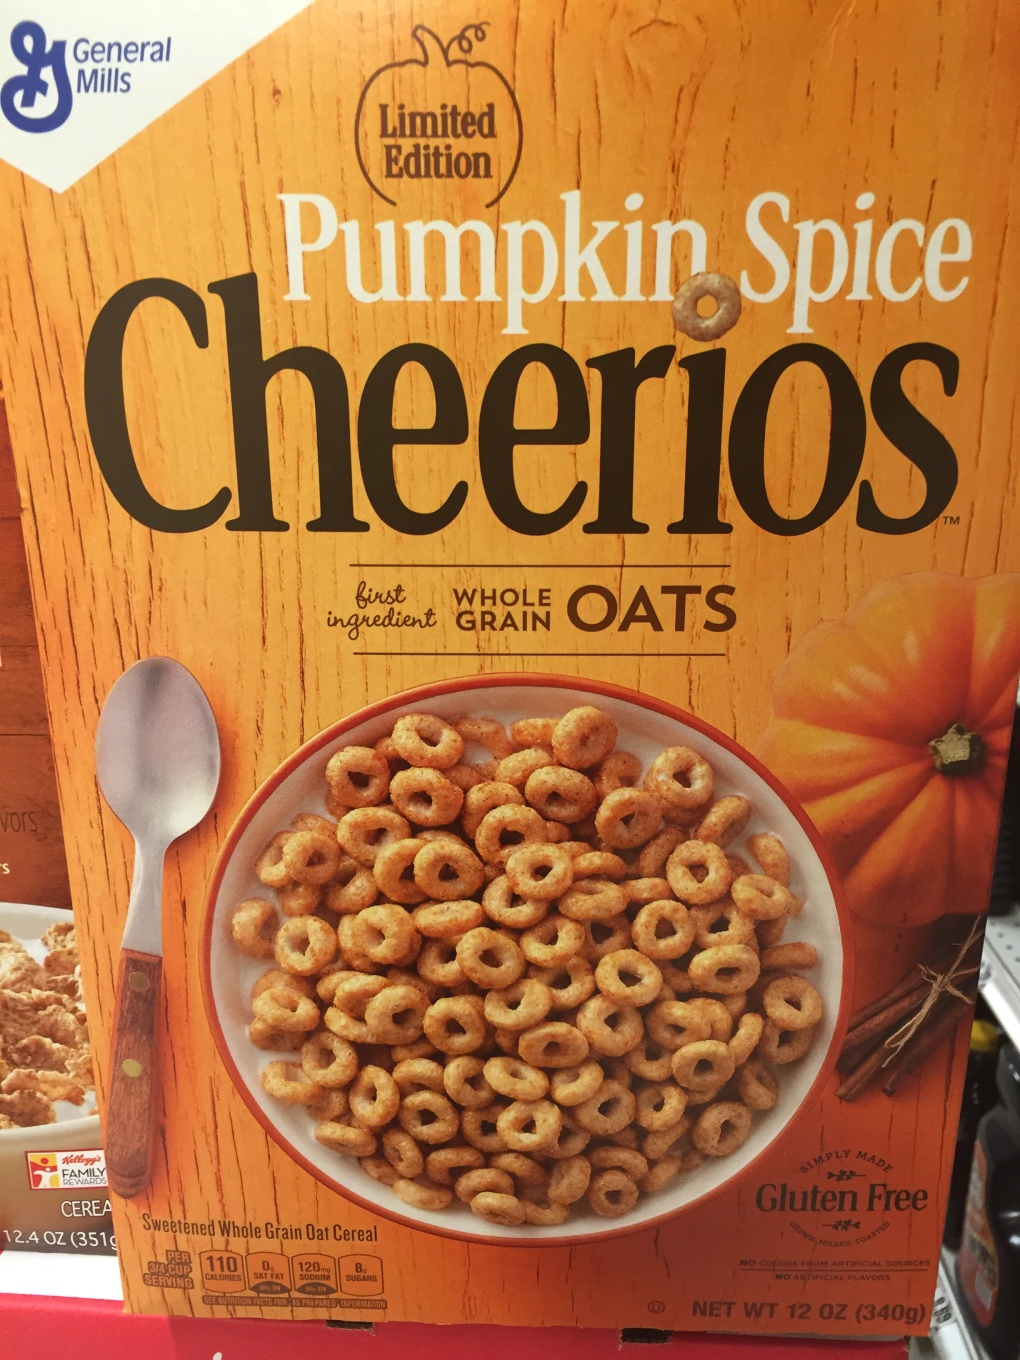 Limited Edition Pumpkin Spice Cheerios have officially hit the shelves.